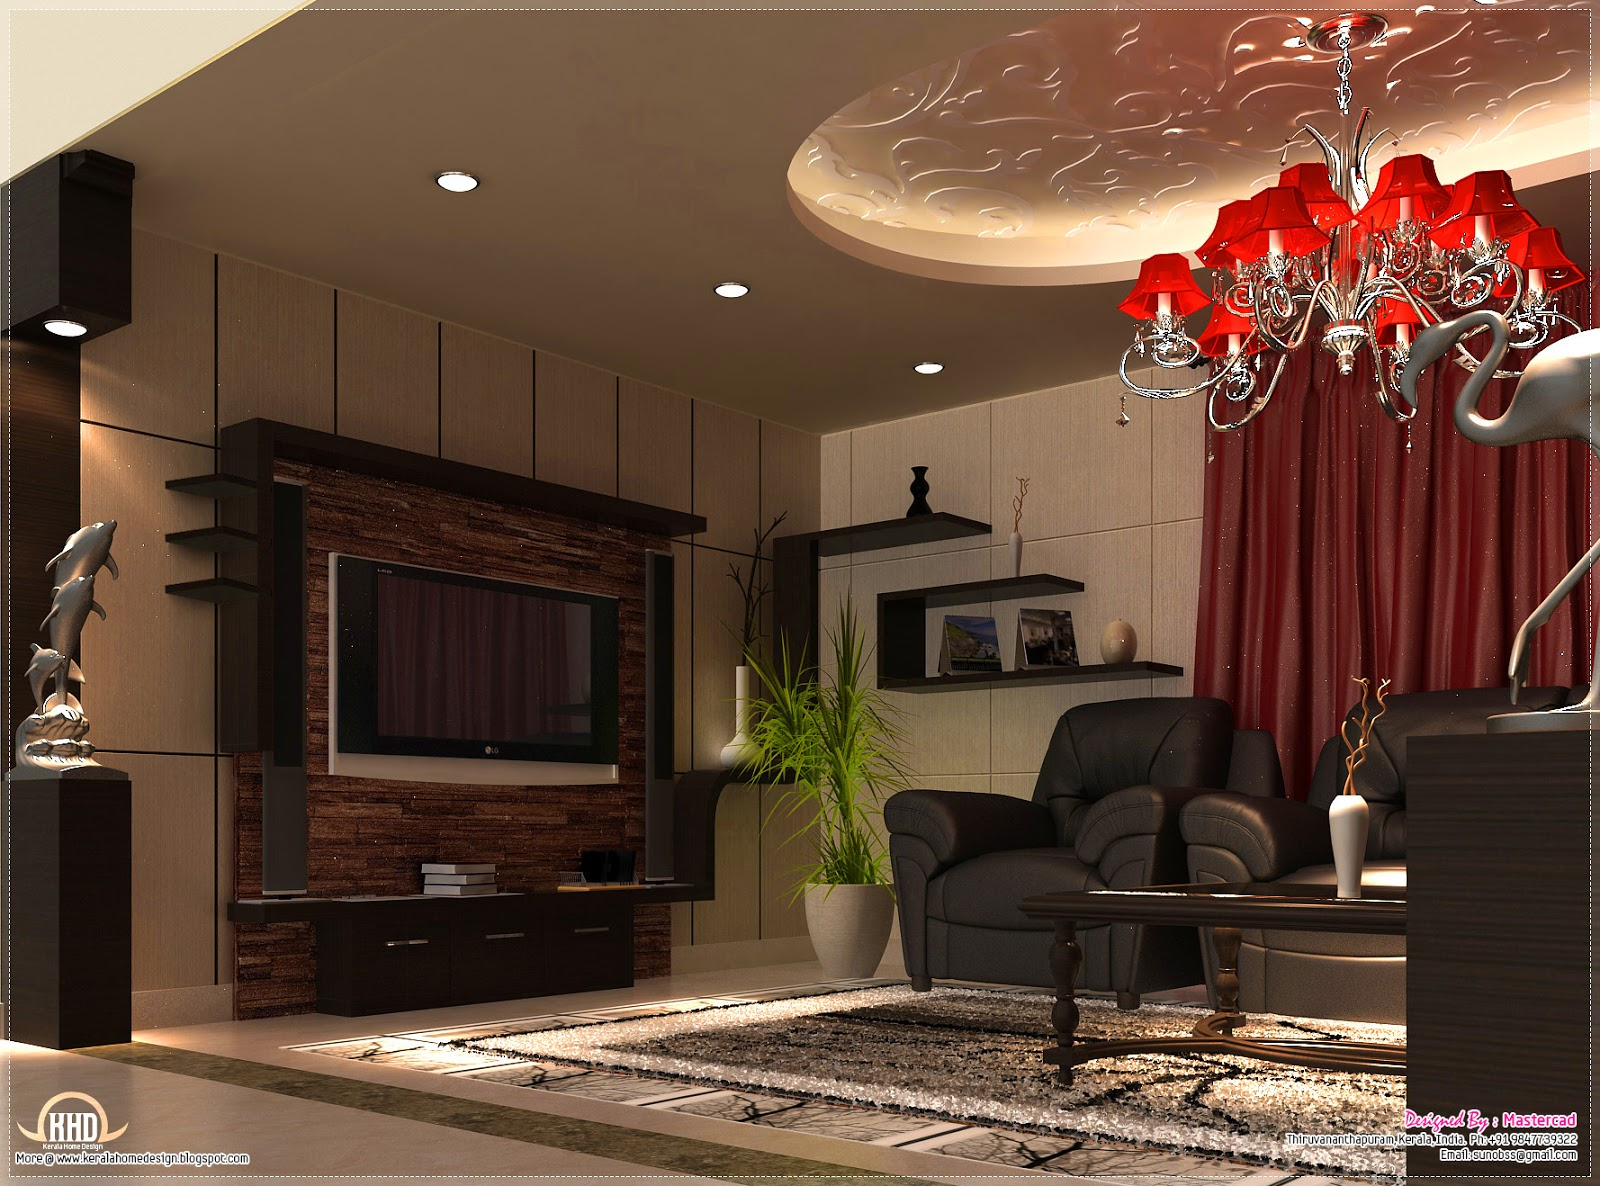 Interior design ideas kerala home design and floor plans for Kerala homes interior designs